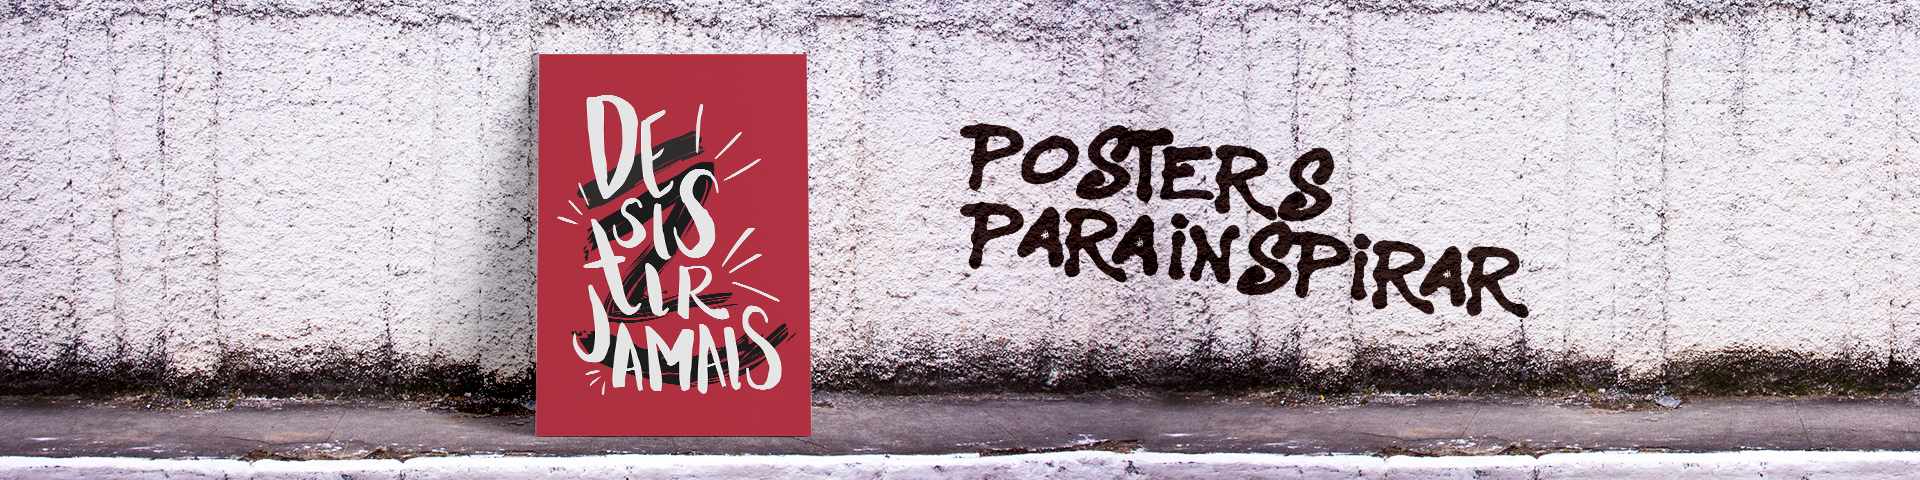 posters frases